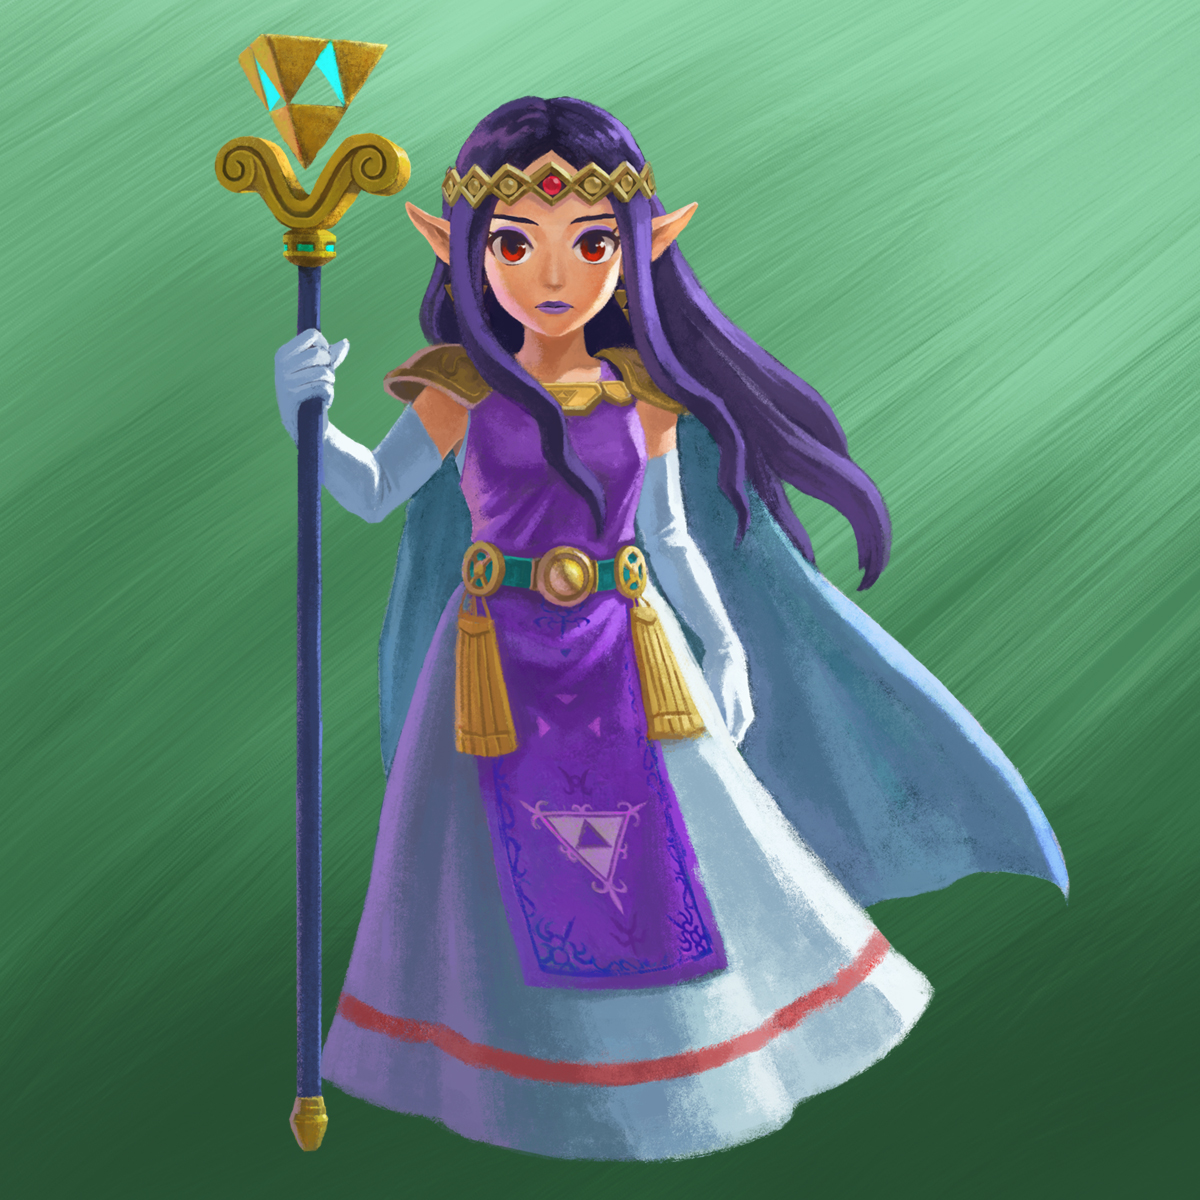 ⌠Post Oficial⌡ -ⓏⒺⓁⒹⒶ- The Legend of Zelda: A Link Between Worlds -ⓏⒺⓁⒹⒶ- - Página 2 1381521071-hilda-from-lorule